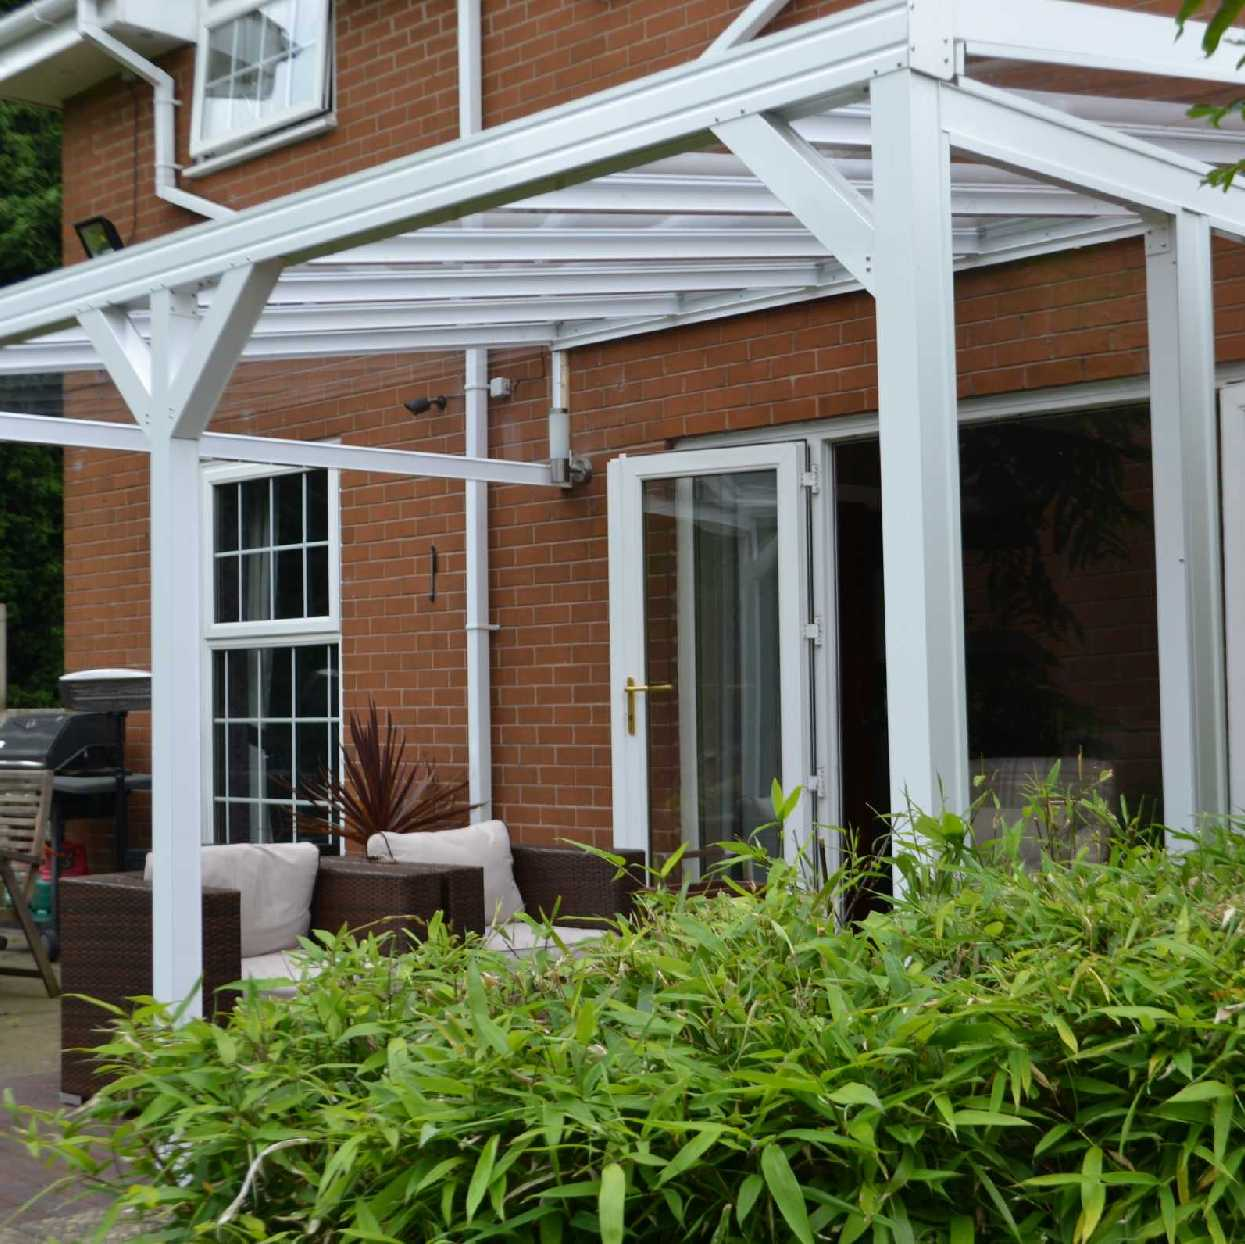 Omega Smart White Lean-To Canopy with 6mm Glass Clear Plate Polycarbonate Glazing - 7.7m (W) x 3.0m (P), (4) Supporting Posts from Omega Build